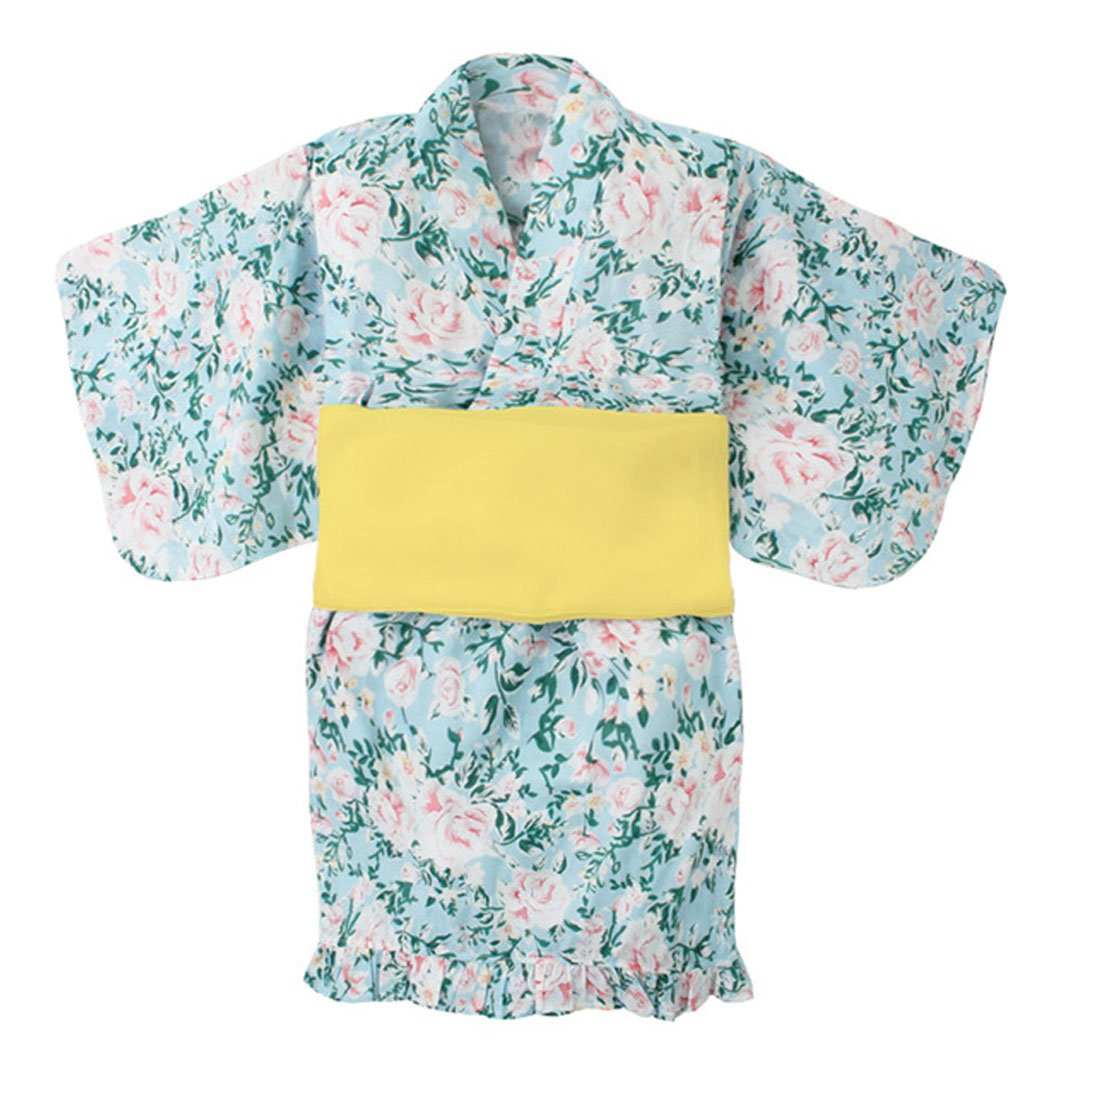 ACVIP Little Girls's Flower Print Two-Piece Kimono Dress Robe with Belt (Height 90cm/35.4 in, Blue)